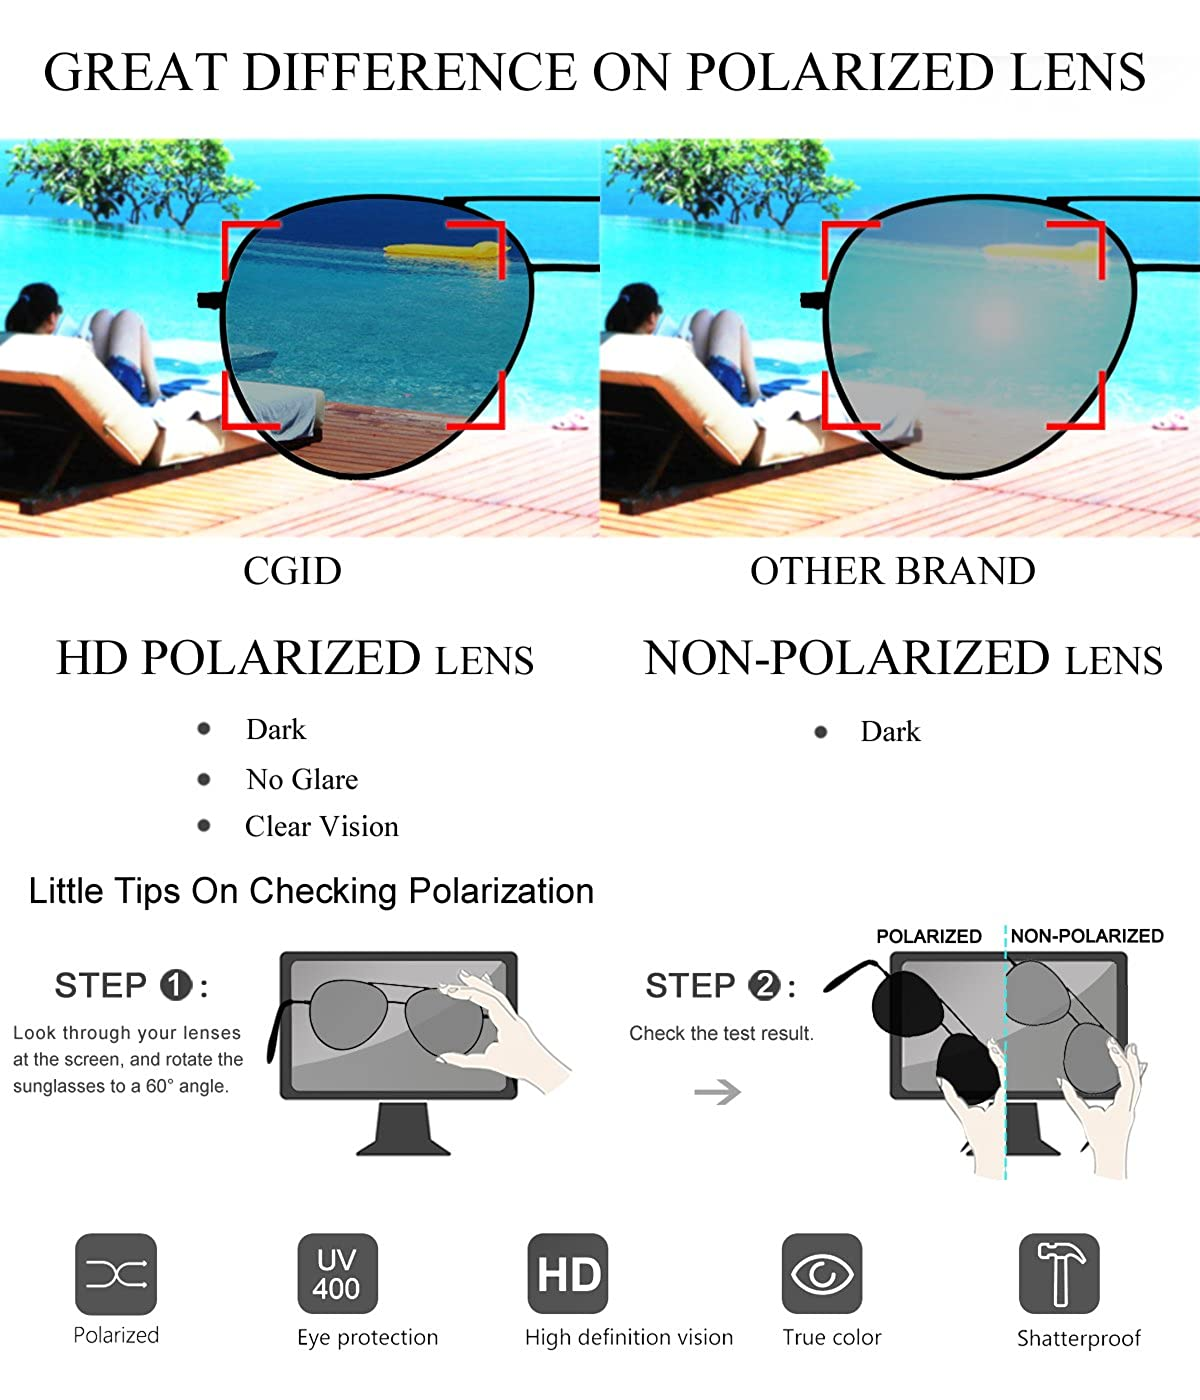 e992df5ae3b Amazon.com  CGID Sunglasses Polarized for Men and Women Pilot Sun Glasses  Polaroid Shades Shield UV400 Protection Dark Glasses 100% UV 400 Goggles  for ...